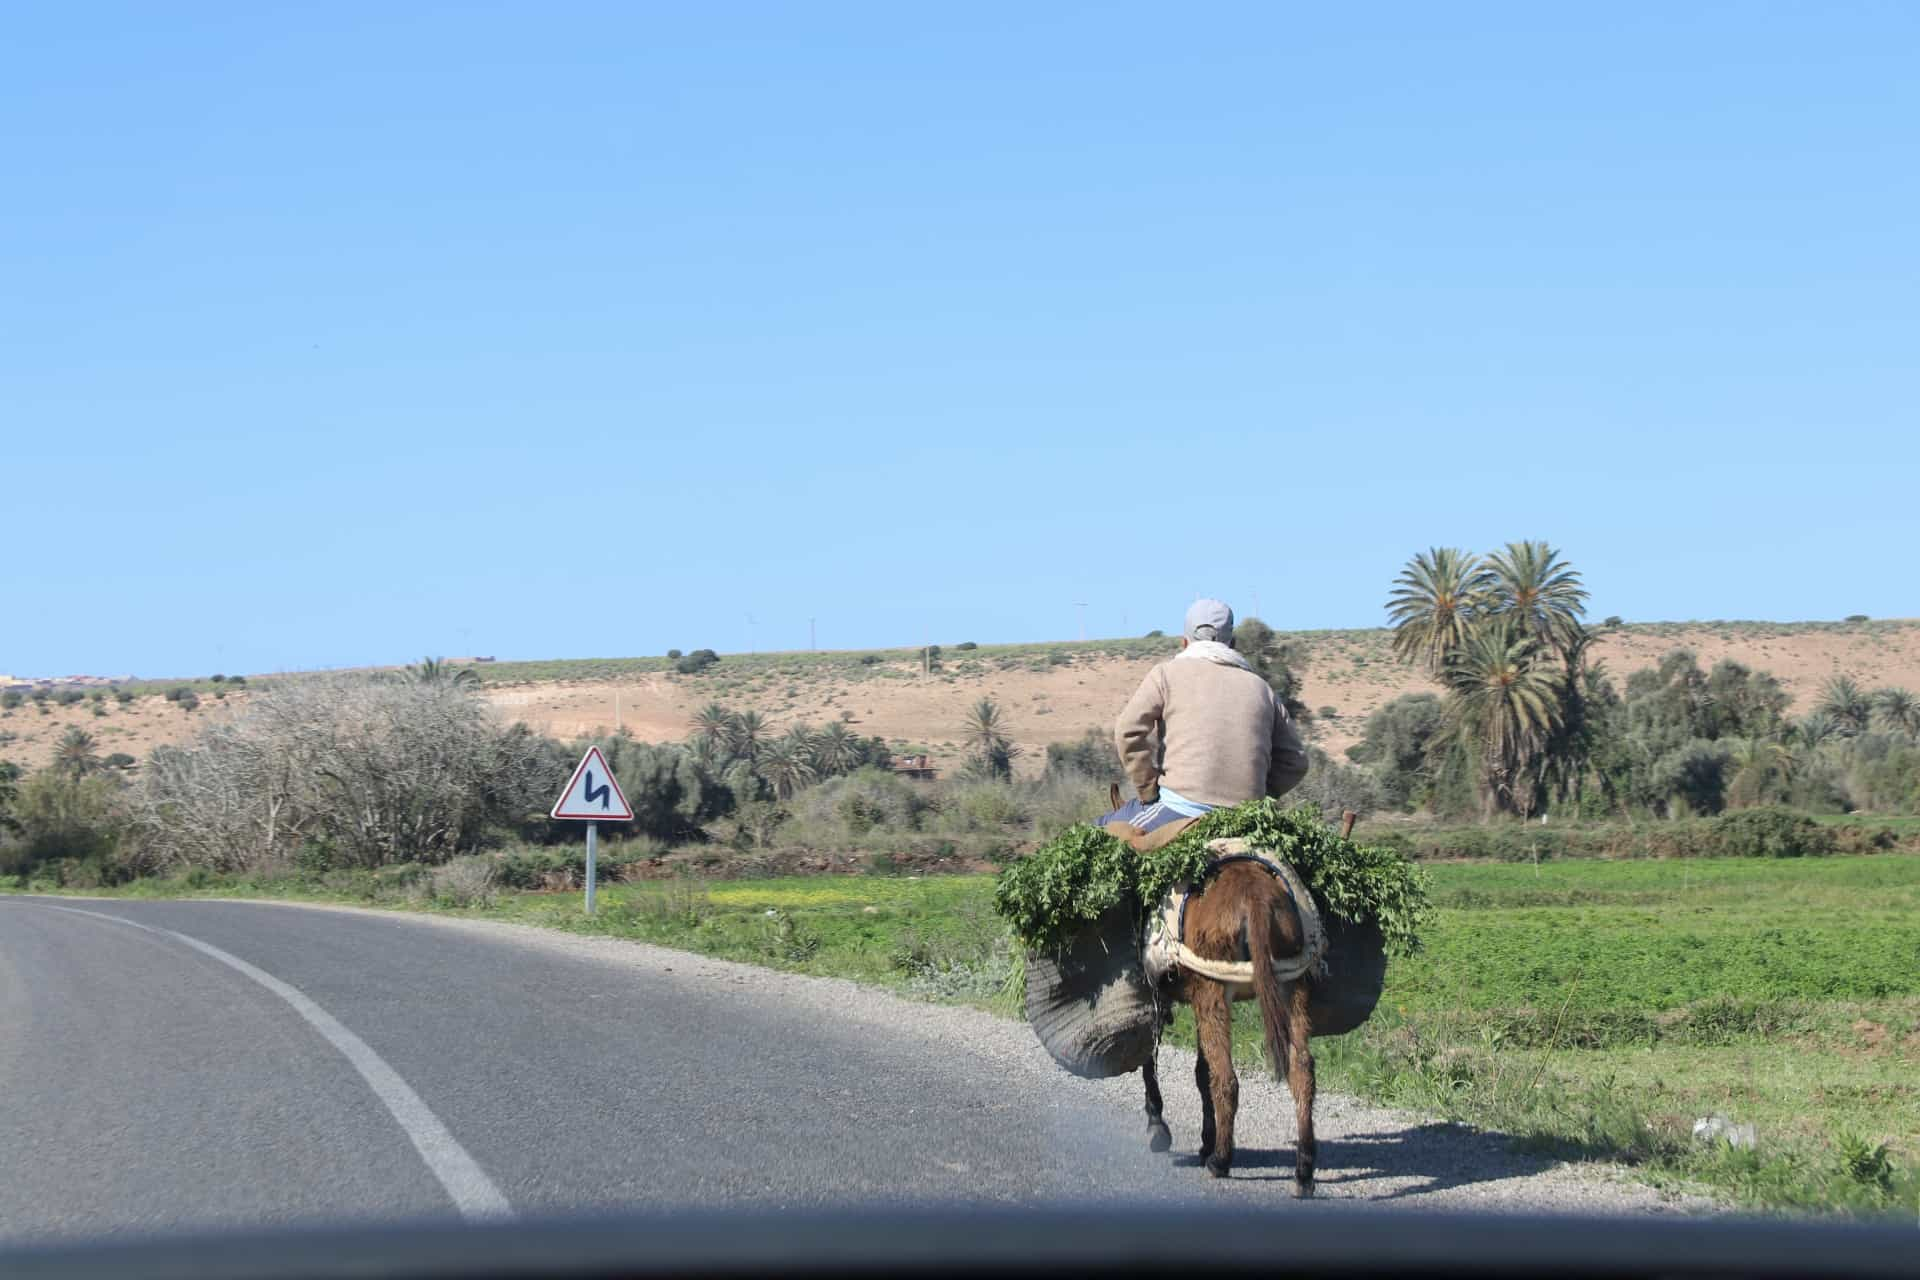 One of the rare water rich valleys has booming agriculture with donkey being the main mint plant transport vehicle.